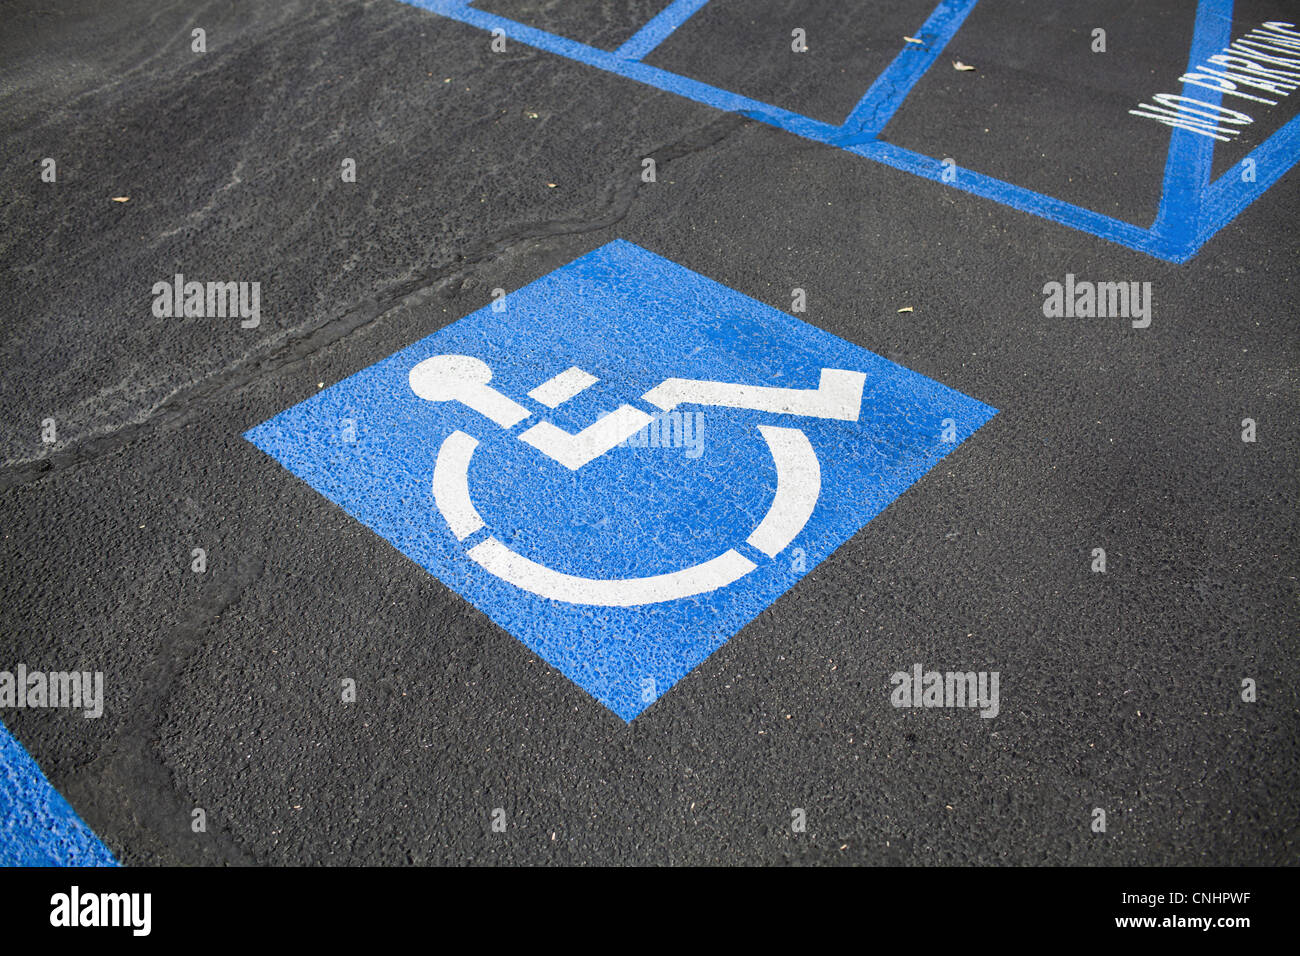 Disabled parking space - Stock Image